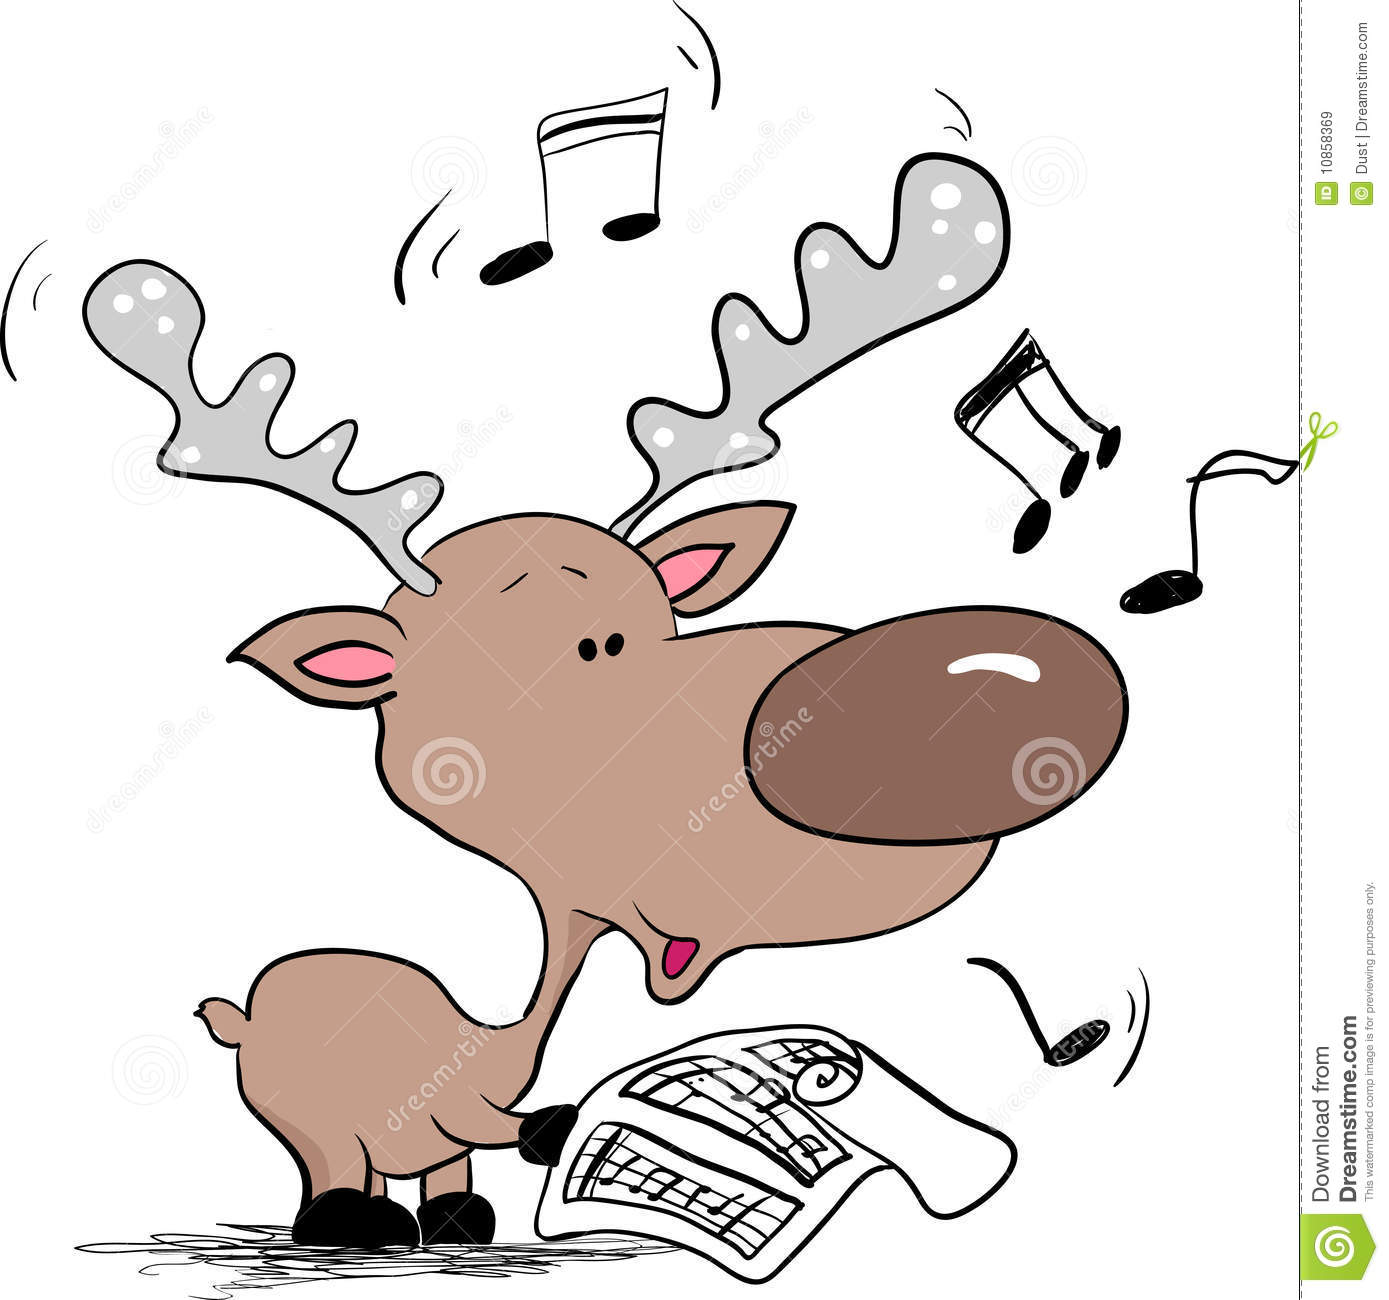 Reindeer Singing Christmas Song Royalty Free Stock Images - Image ...